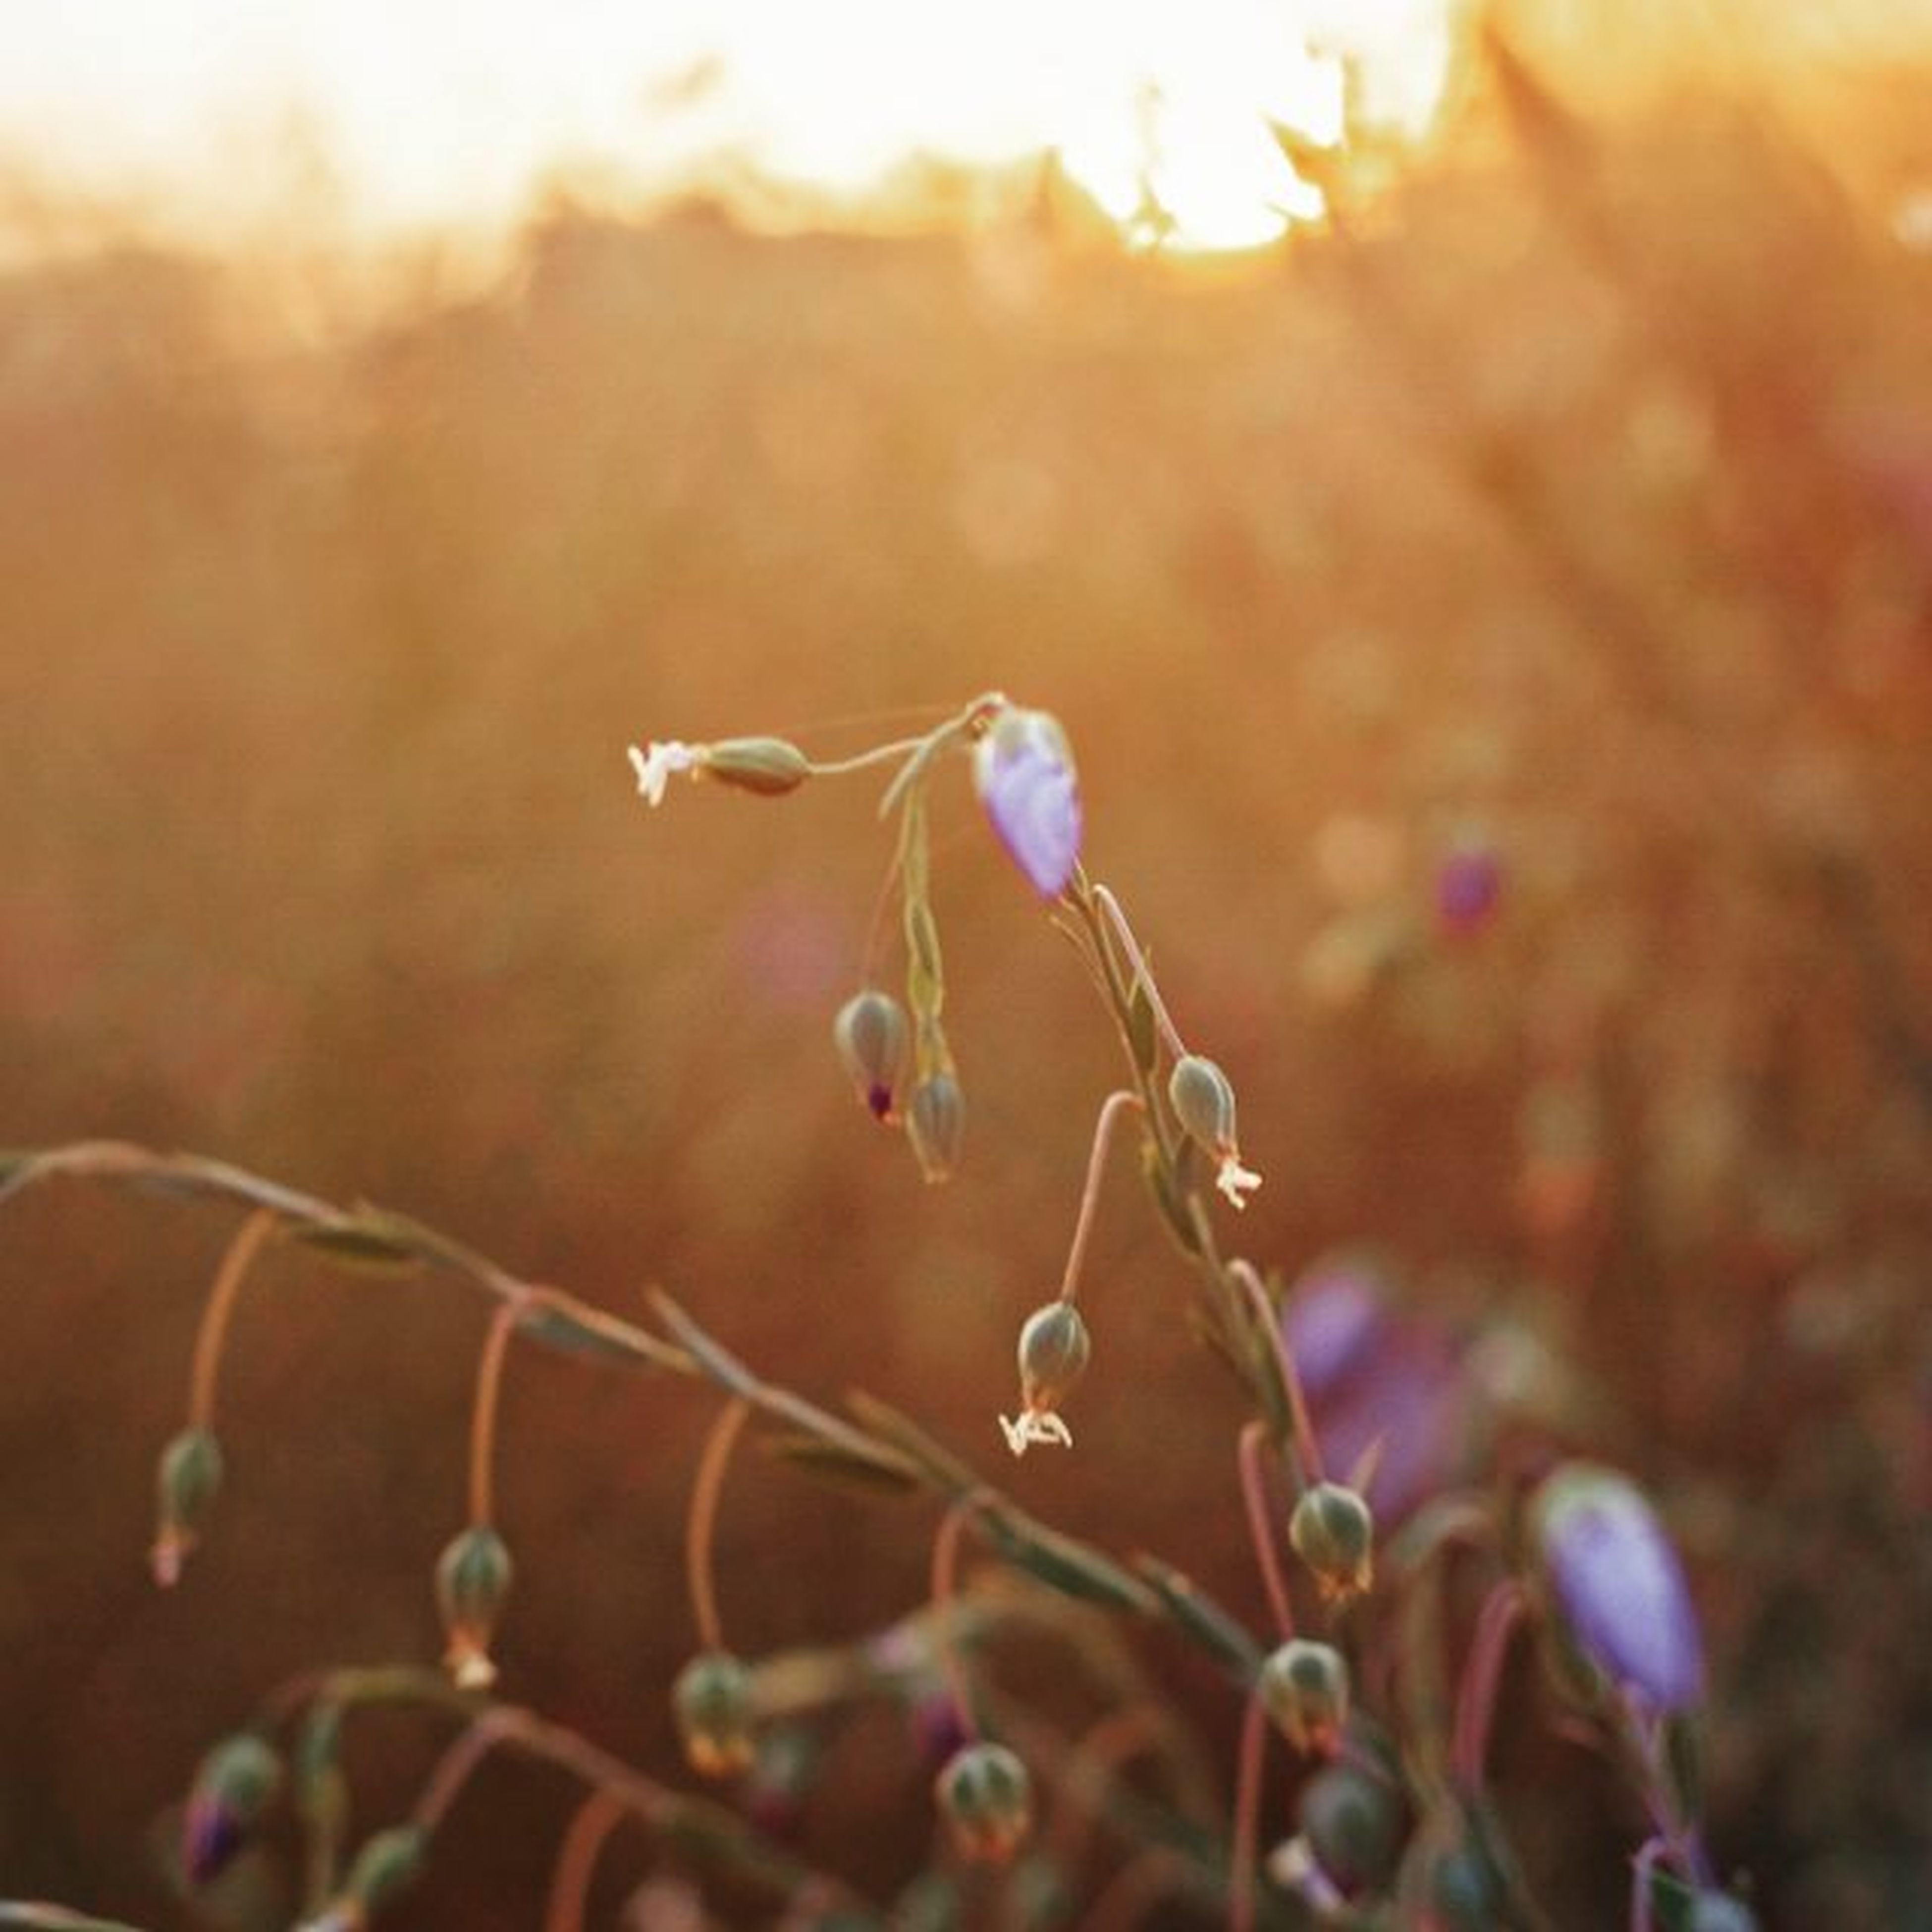 focus on foreground, close-up, selective focus, plant, growth, nature, stem, fragility, beauty in nature, twig, sunlight, lens flare, outdoors, bud, tranquility, day, no people, leaf, flower, freshness